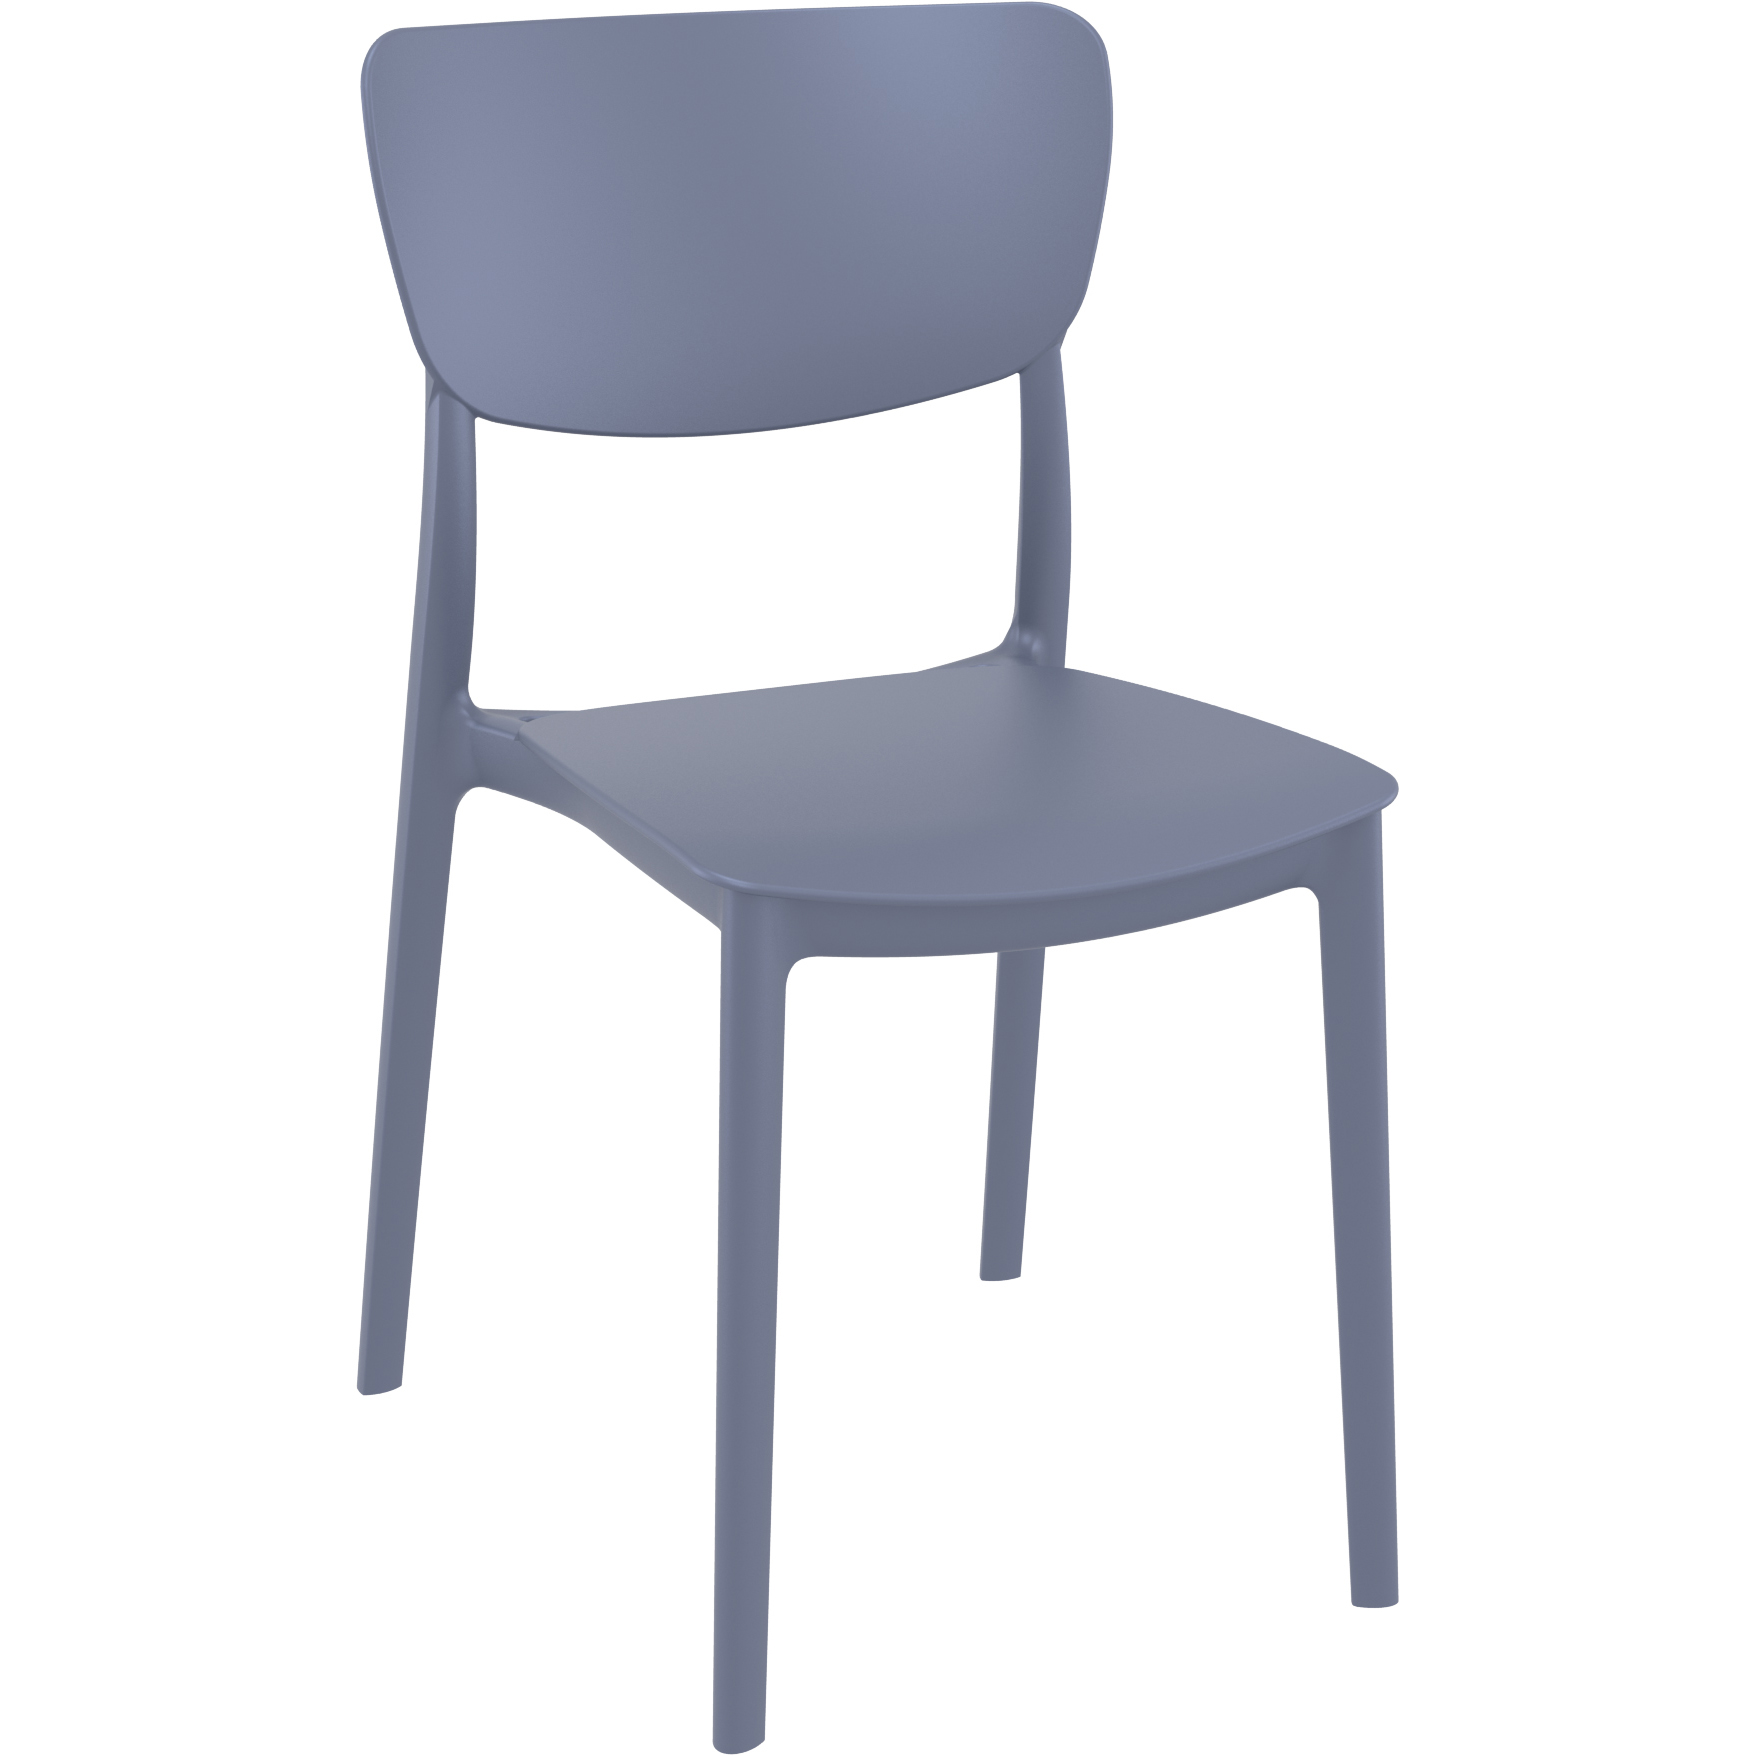 Monna Chair - Anthracite